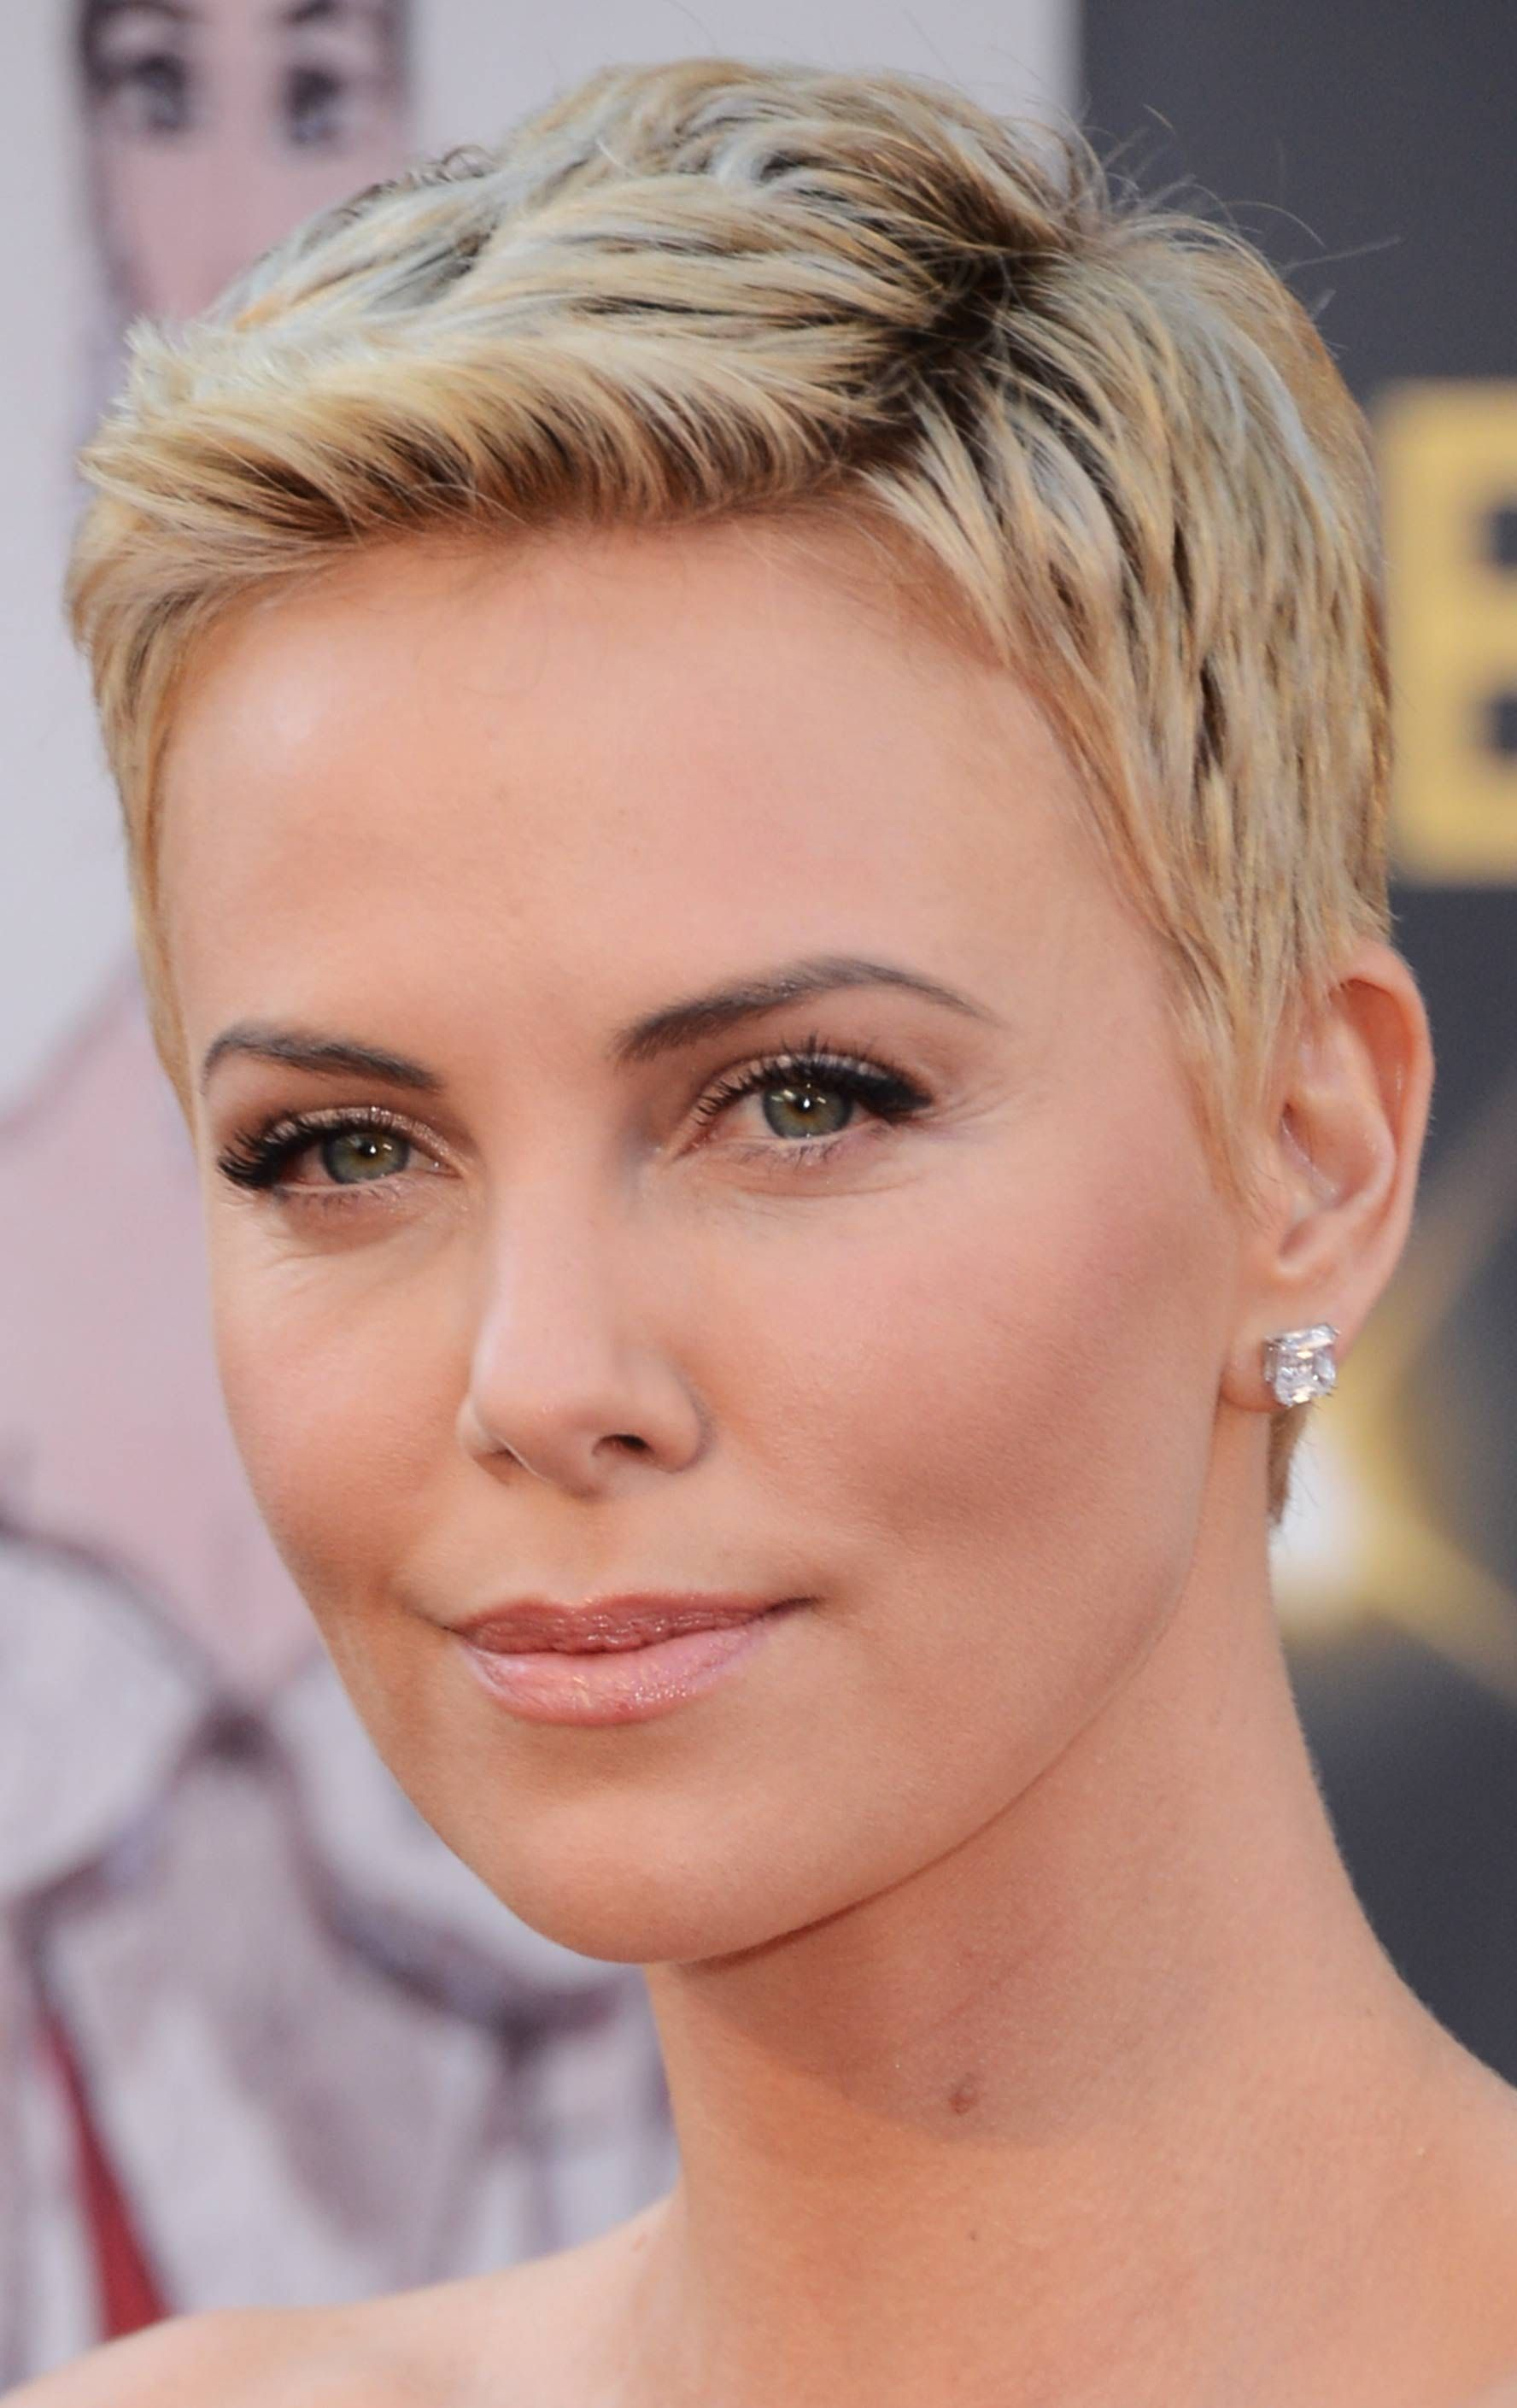 Hairstyles for Oval Faces: The Most Flattering Cuts | Short ...